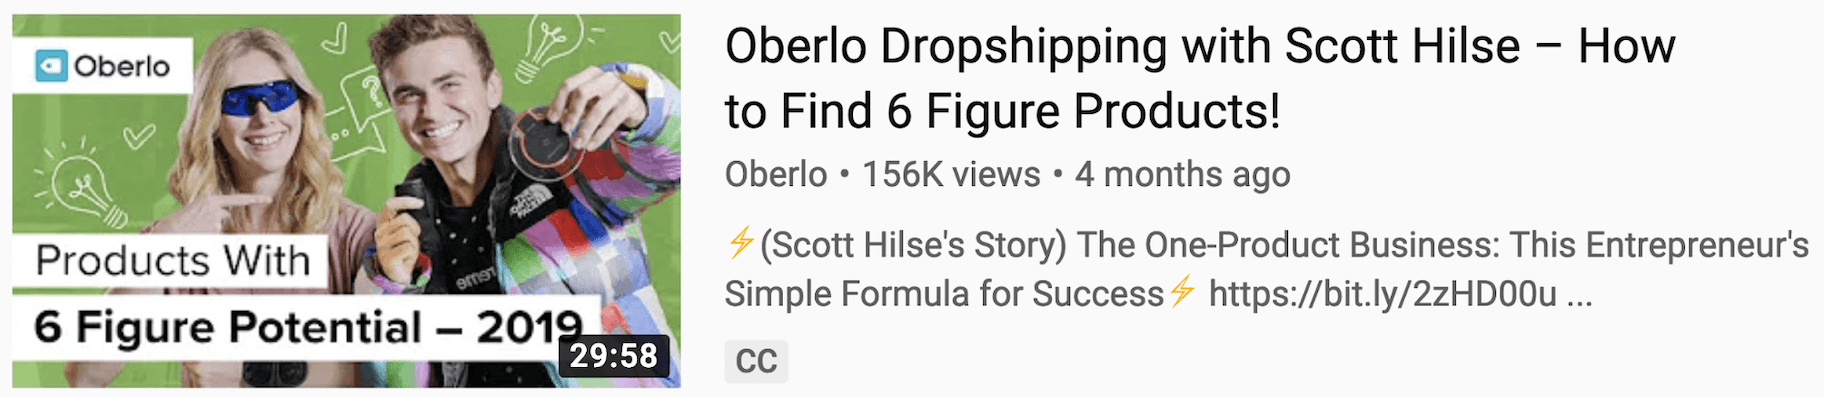 Oberlo Thumbnail and Title